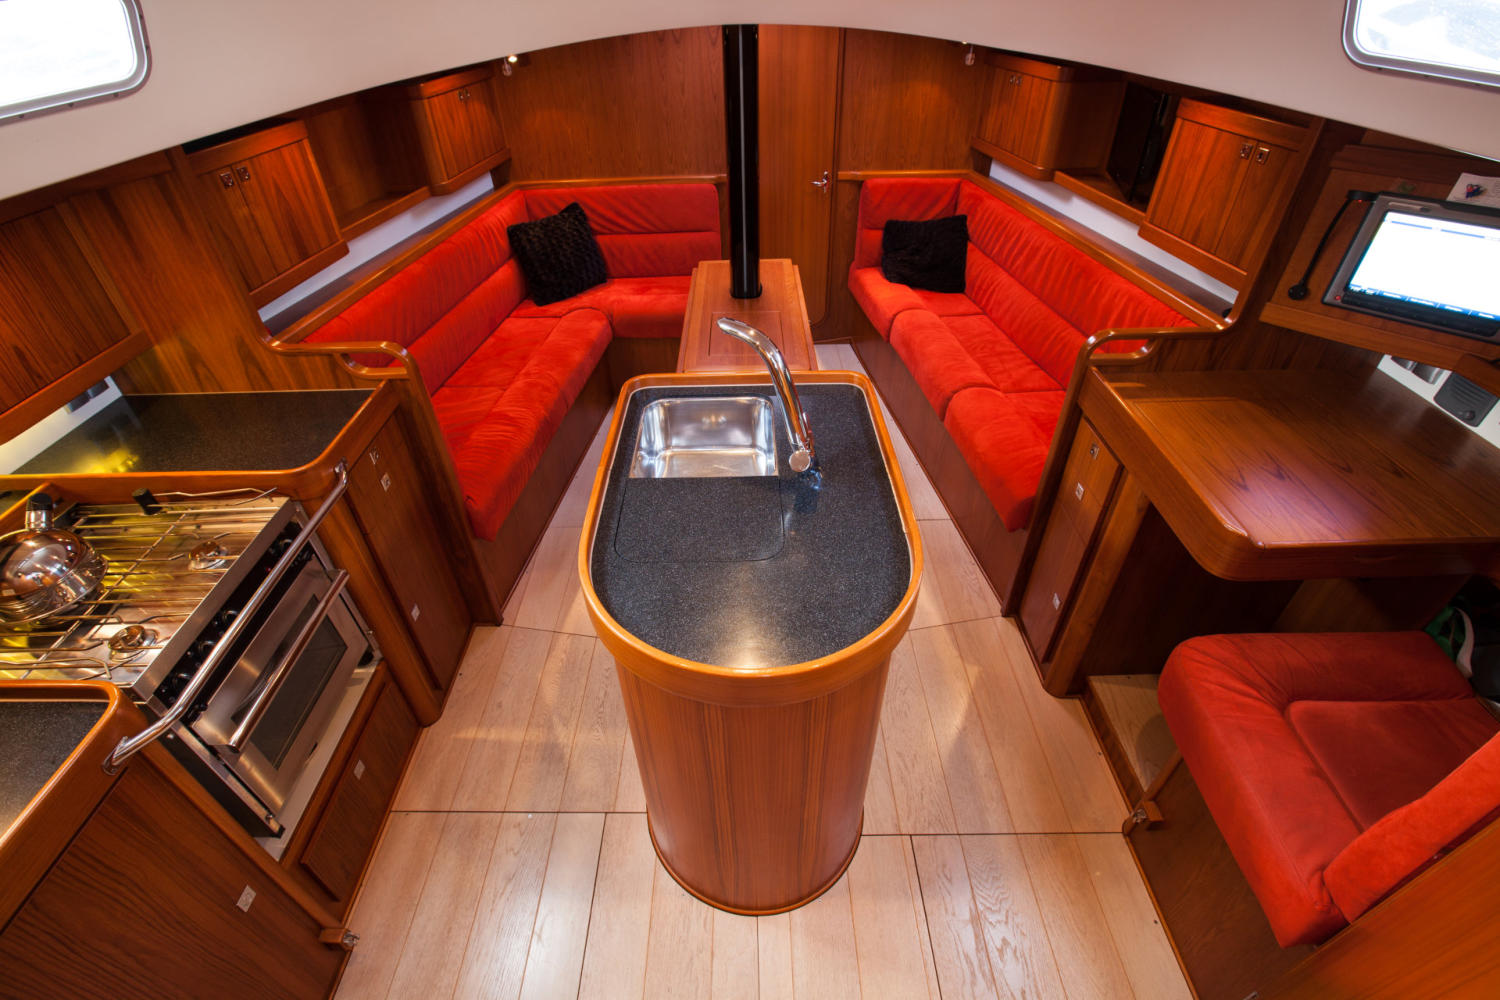 Interior of the Sentijn 37IQ. Photo by: OceanPeople